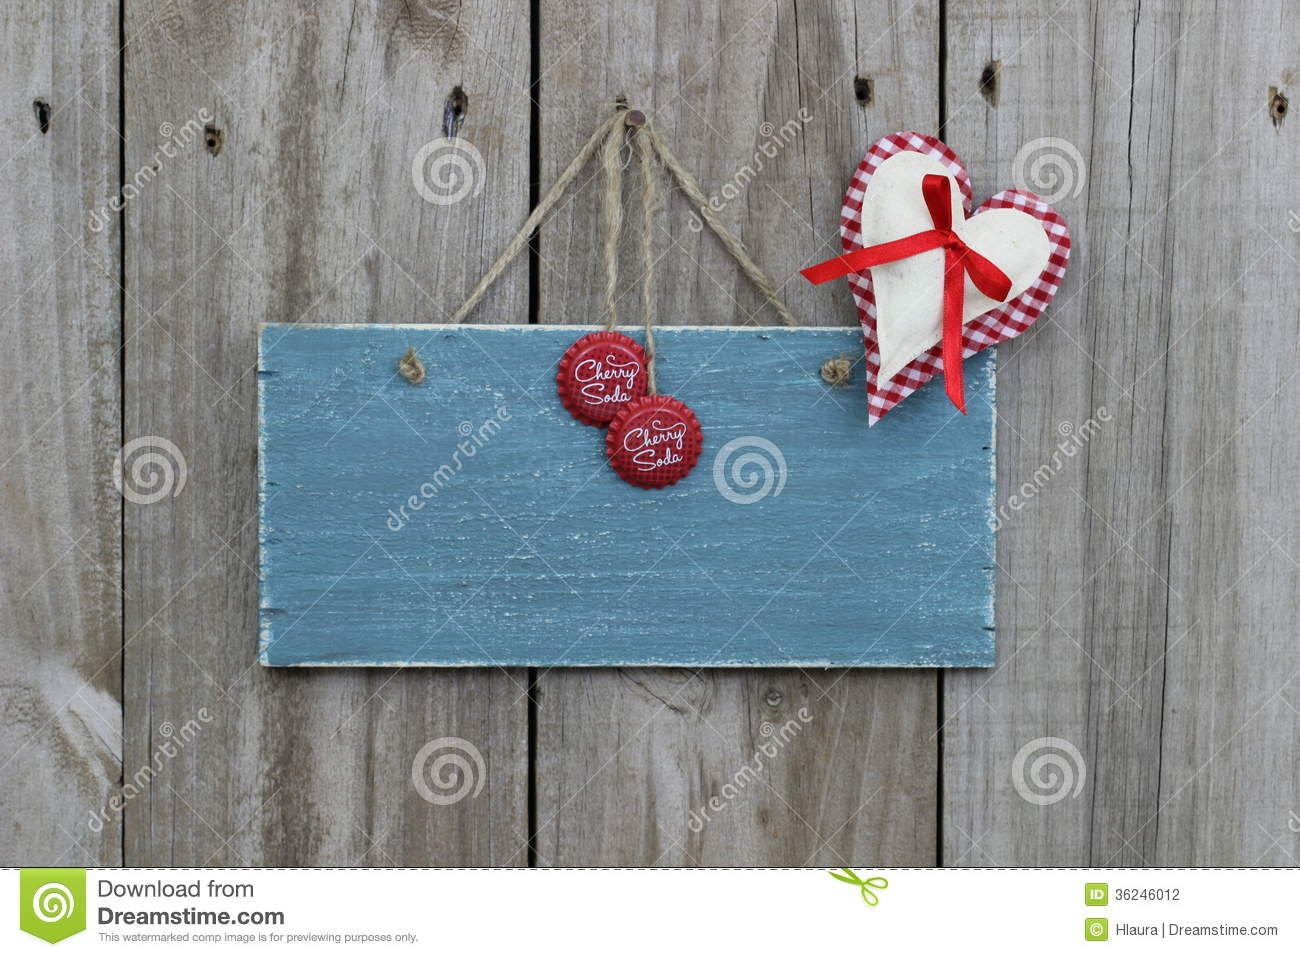 Antique Blue Sign Hanging On Wood Door With Gingham Heart